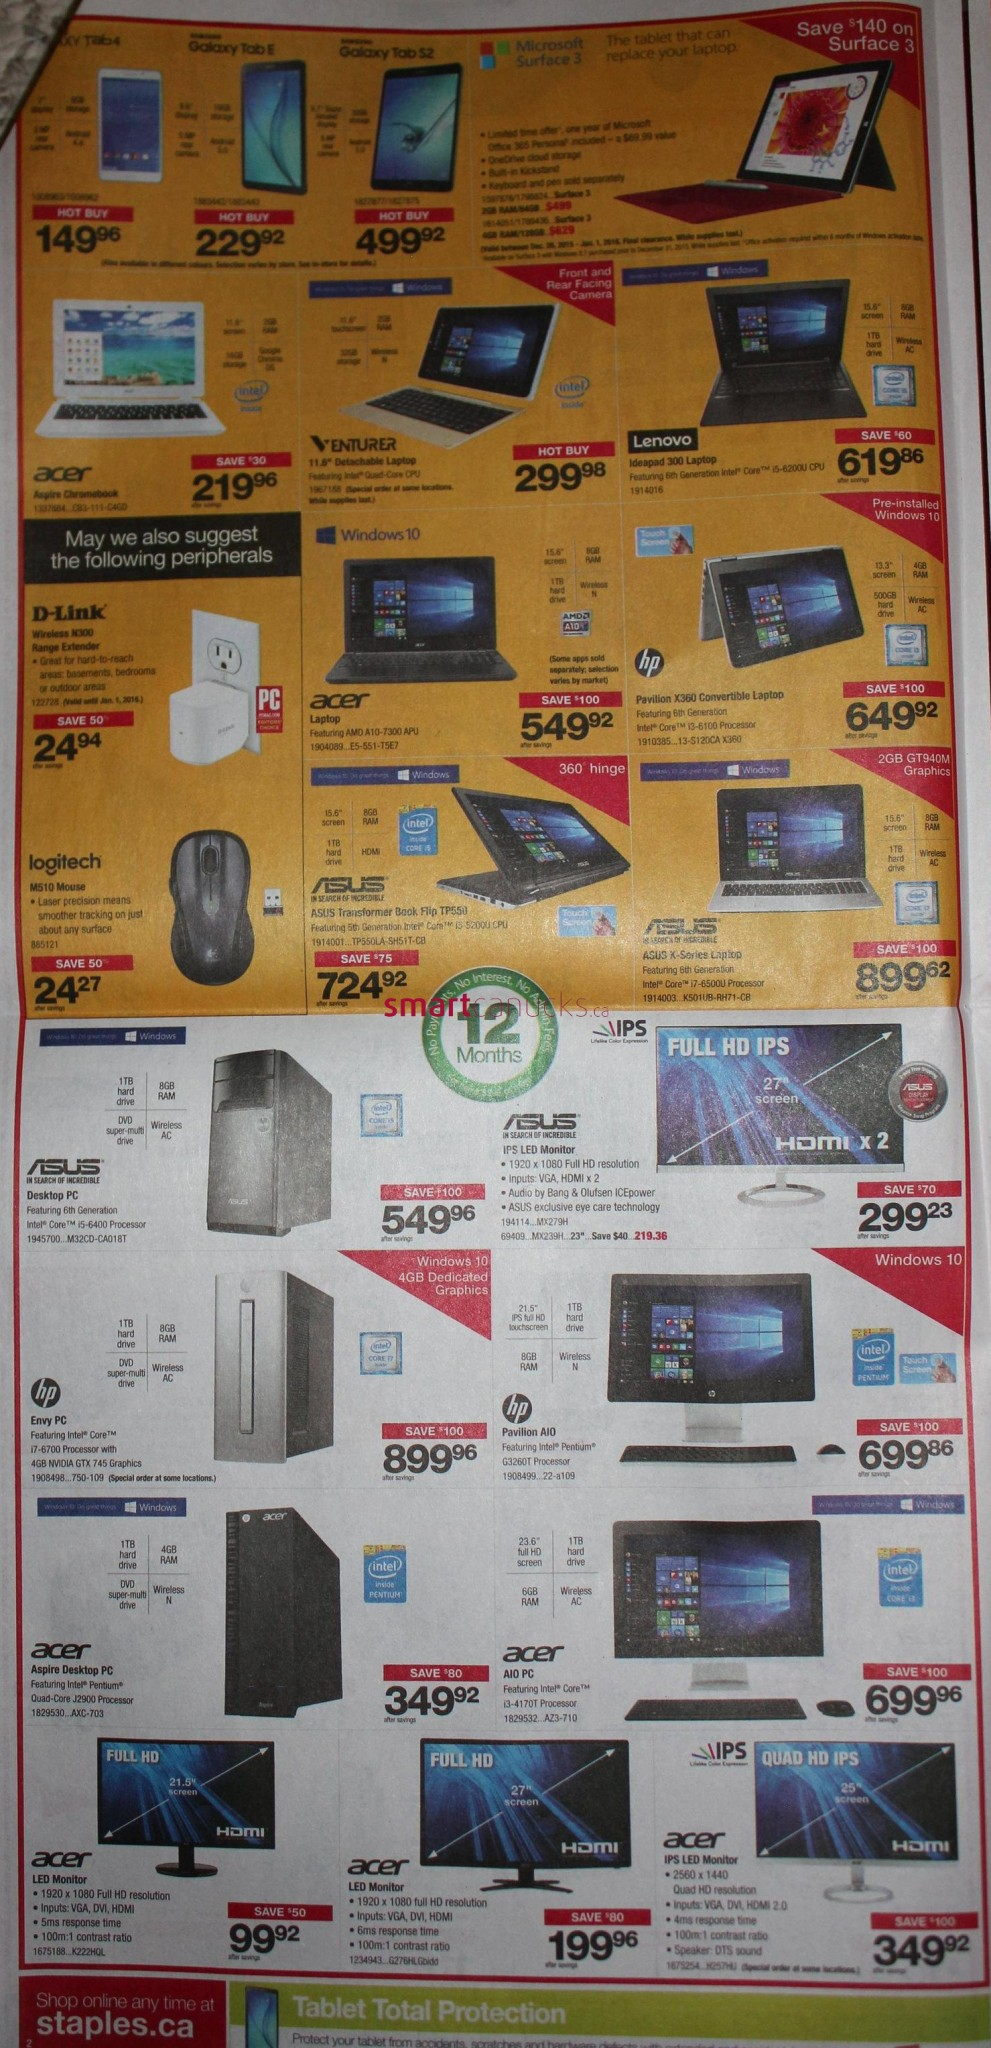 Nov 08,  · Staples Flyer Canada November 22 - 28, Black Friday is now available – Get all the latest specials flyers, deals, and coupons from Staples Flyer store. Also, keep your challenge with coupons and great deals from Staples Store.